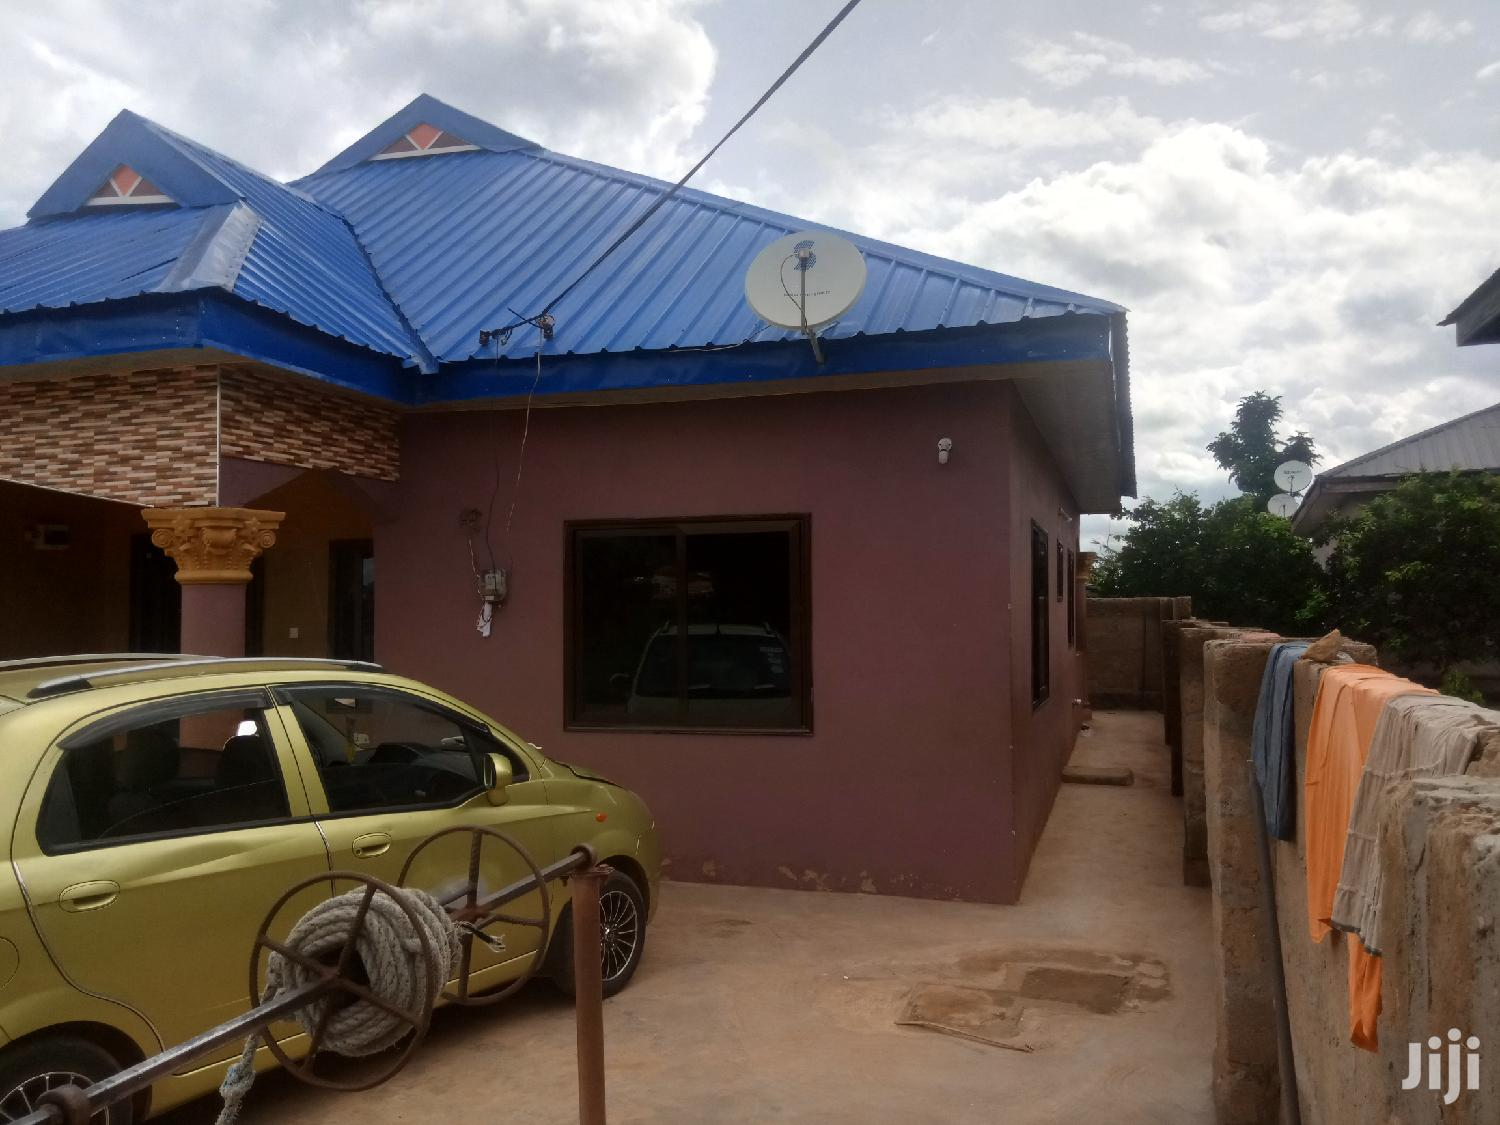 3 Bedroom Bungalow With Spacious Compound And Shop | Houses & Apartments For Sale for sale in Obuasi Municipal, Ashanti, Ghana